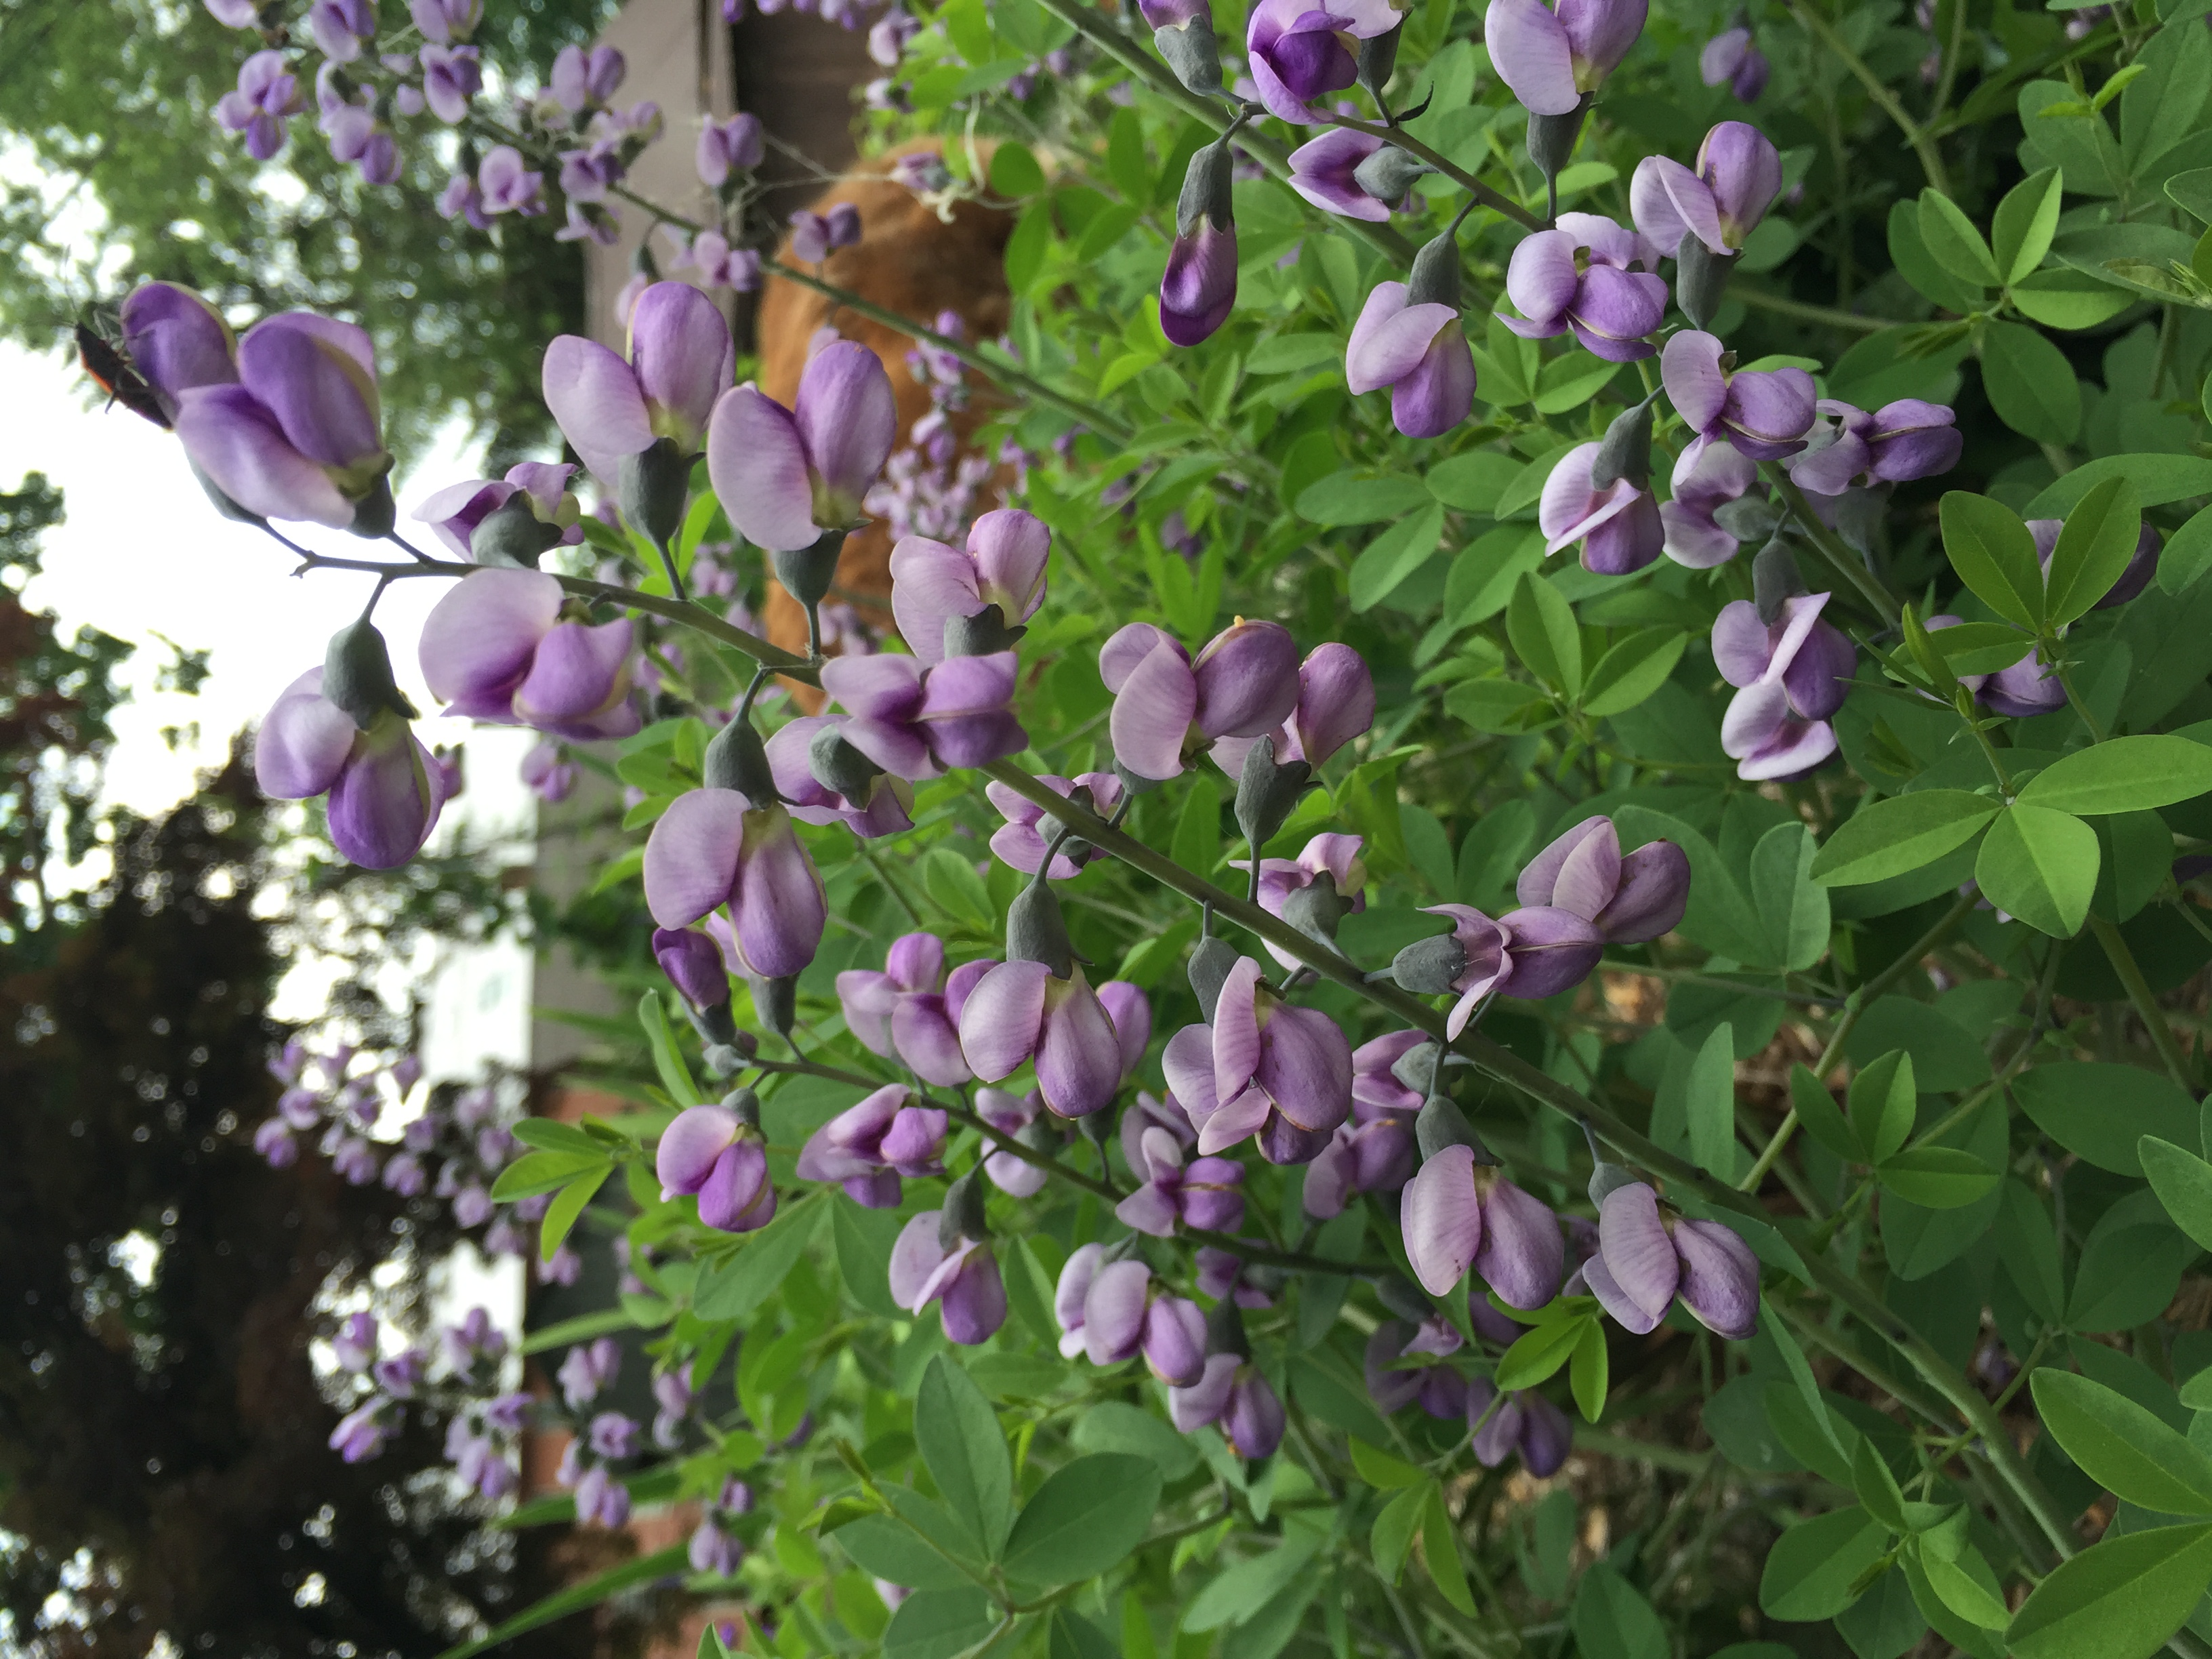 Speaking of that baptisia, look how wonderful it was in bloom!